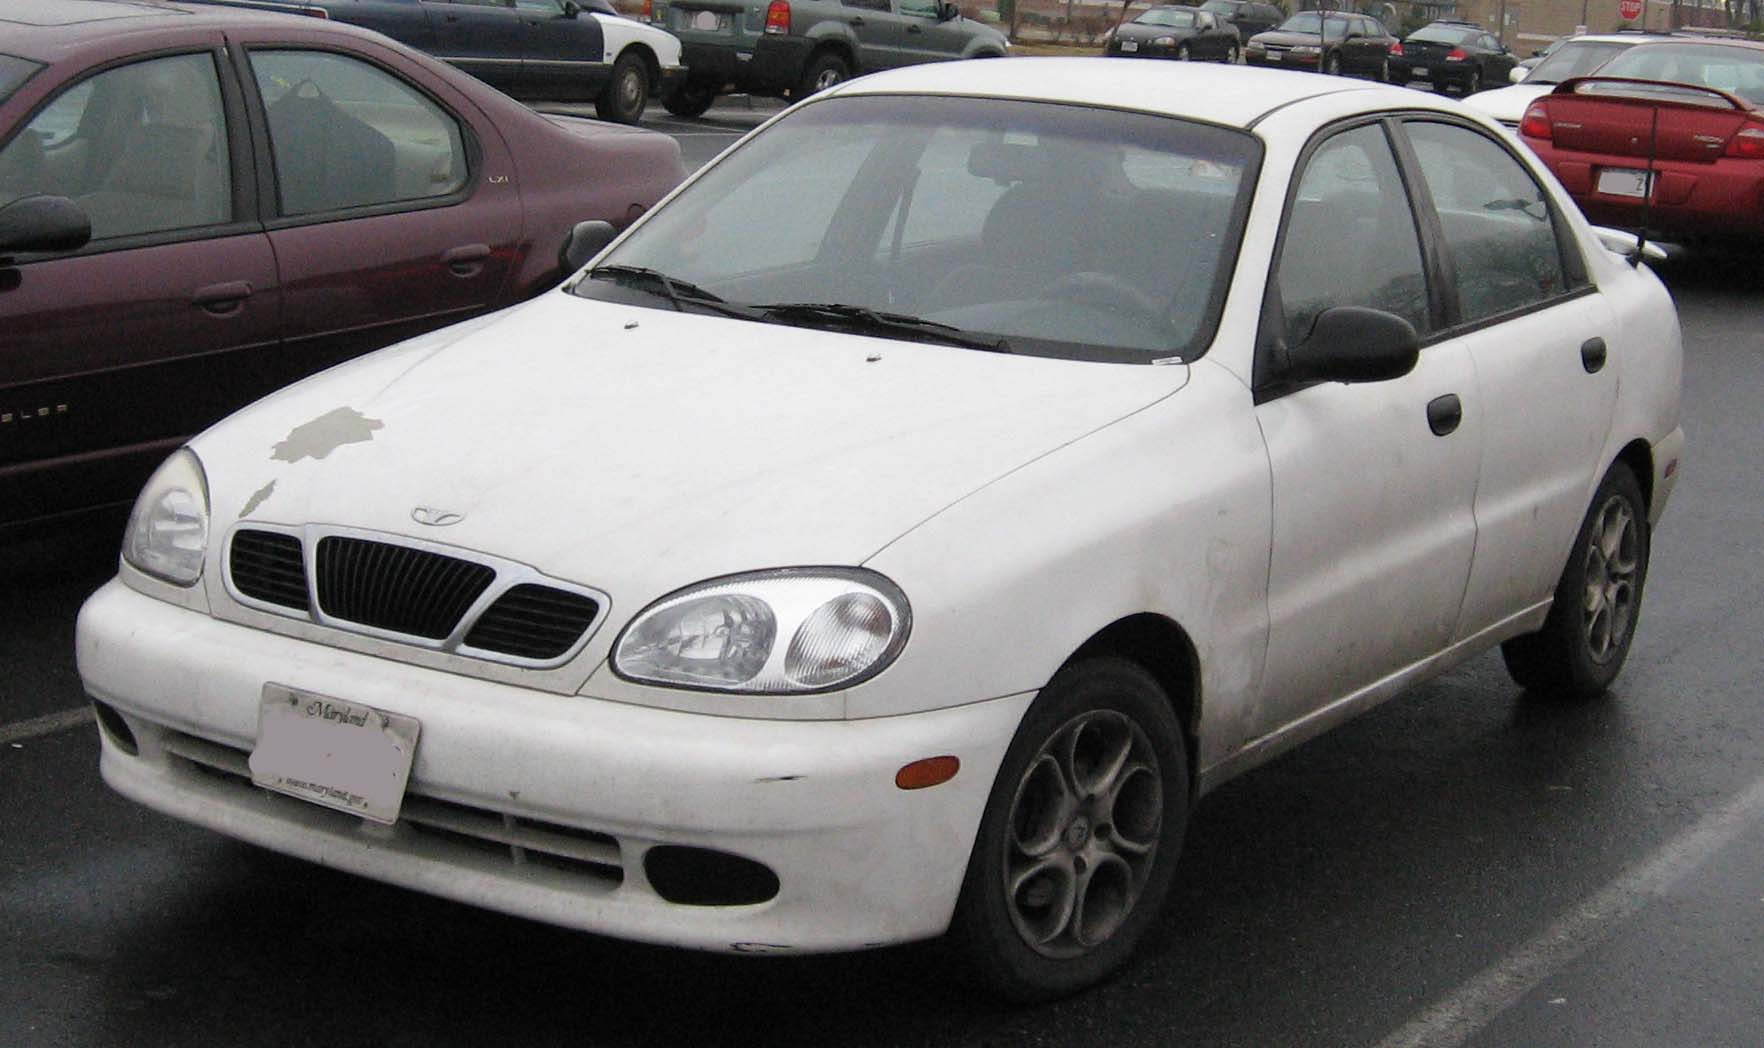 2001 Daewoo Lanos Information And Photos Zombiedrive This Picture Is A Preview Of Electrical Wiring Diagram 8